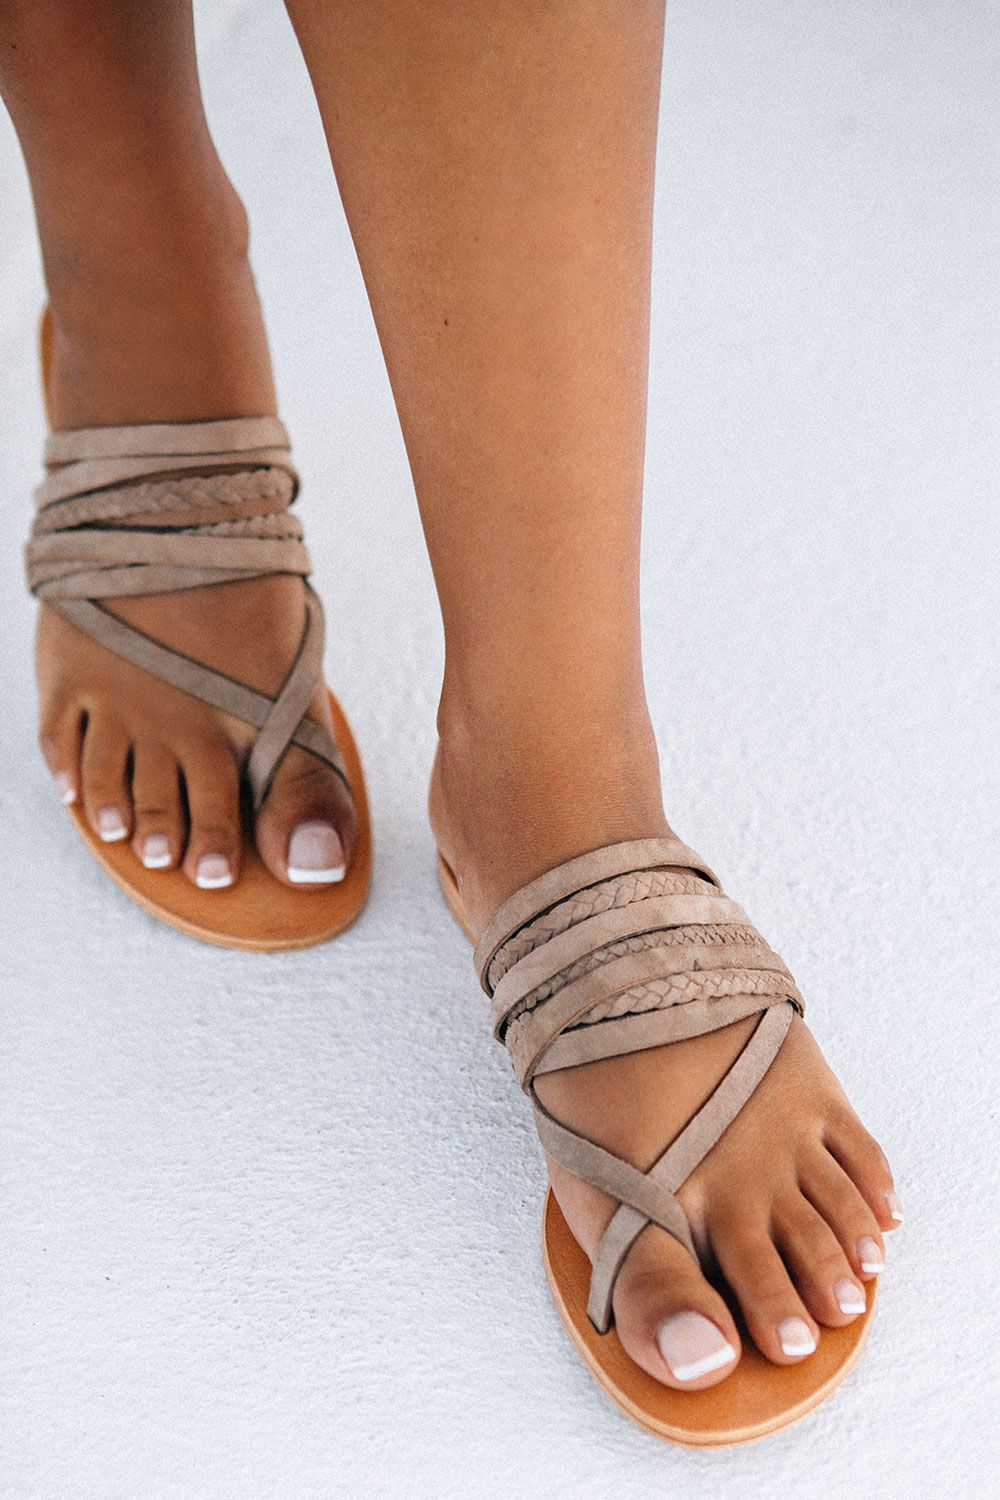 1e4b8c296 Best 10 sandals Cute comfortable strappy gladiator leather wedge sandals  chunky flatform jamaica lace up boho espadrilles sandals  sandals  shoes   slippers ...